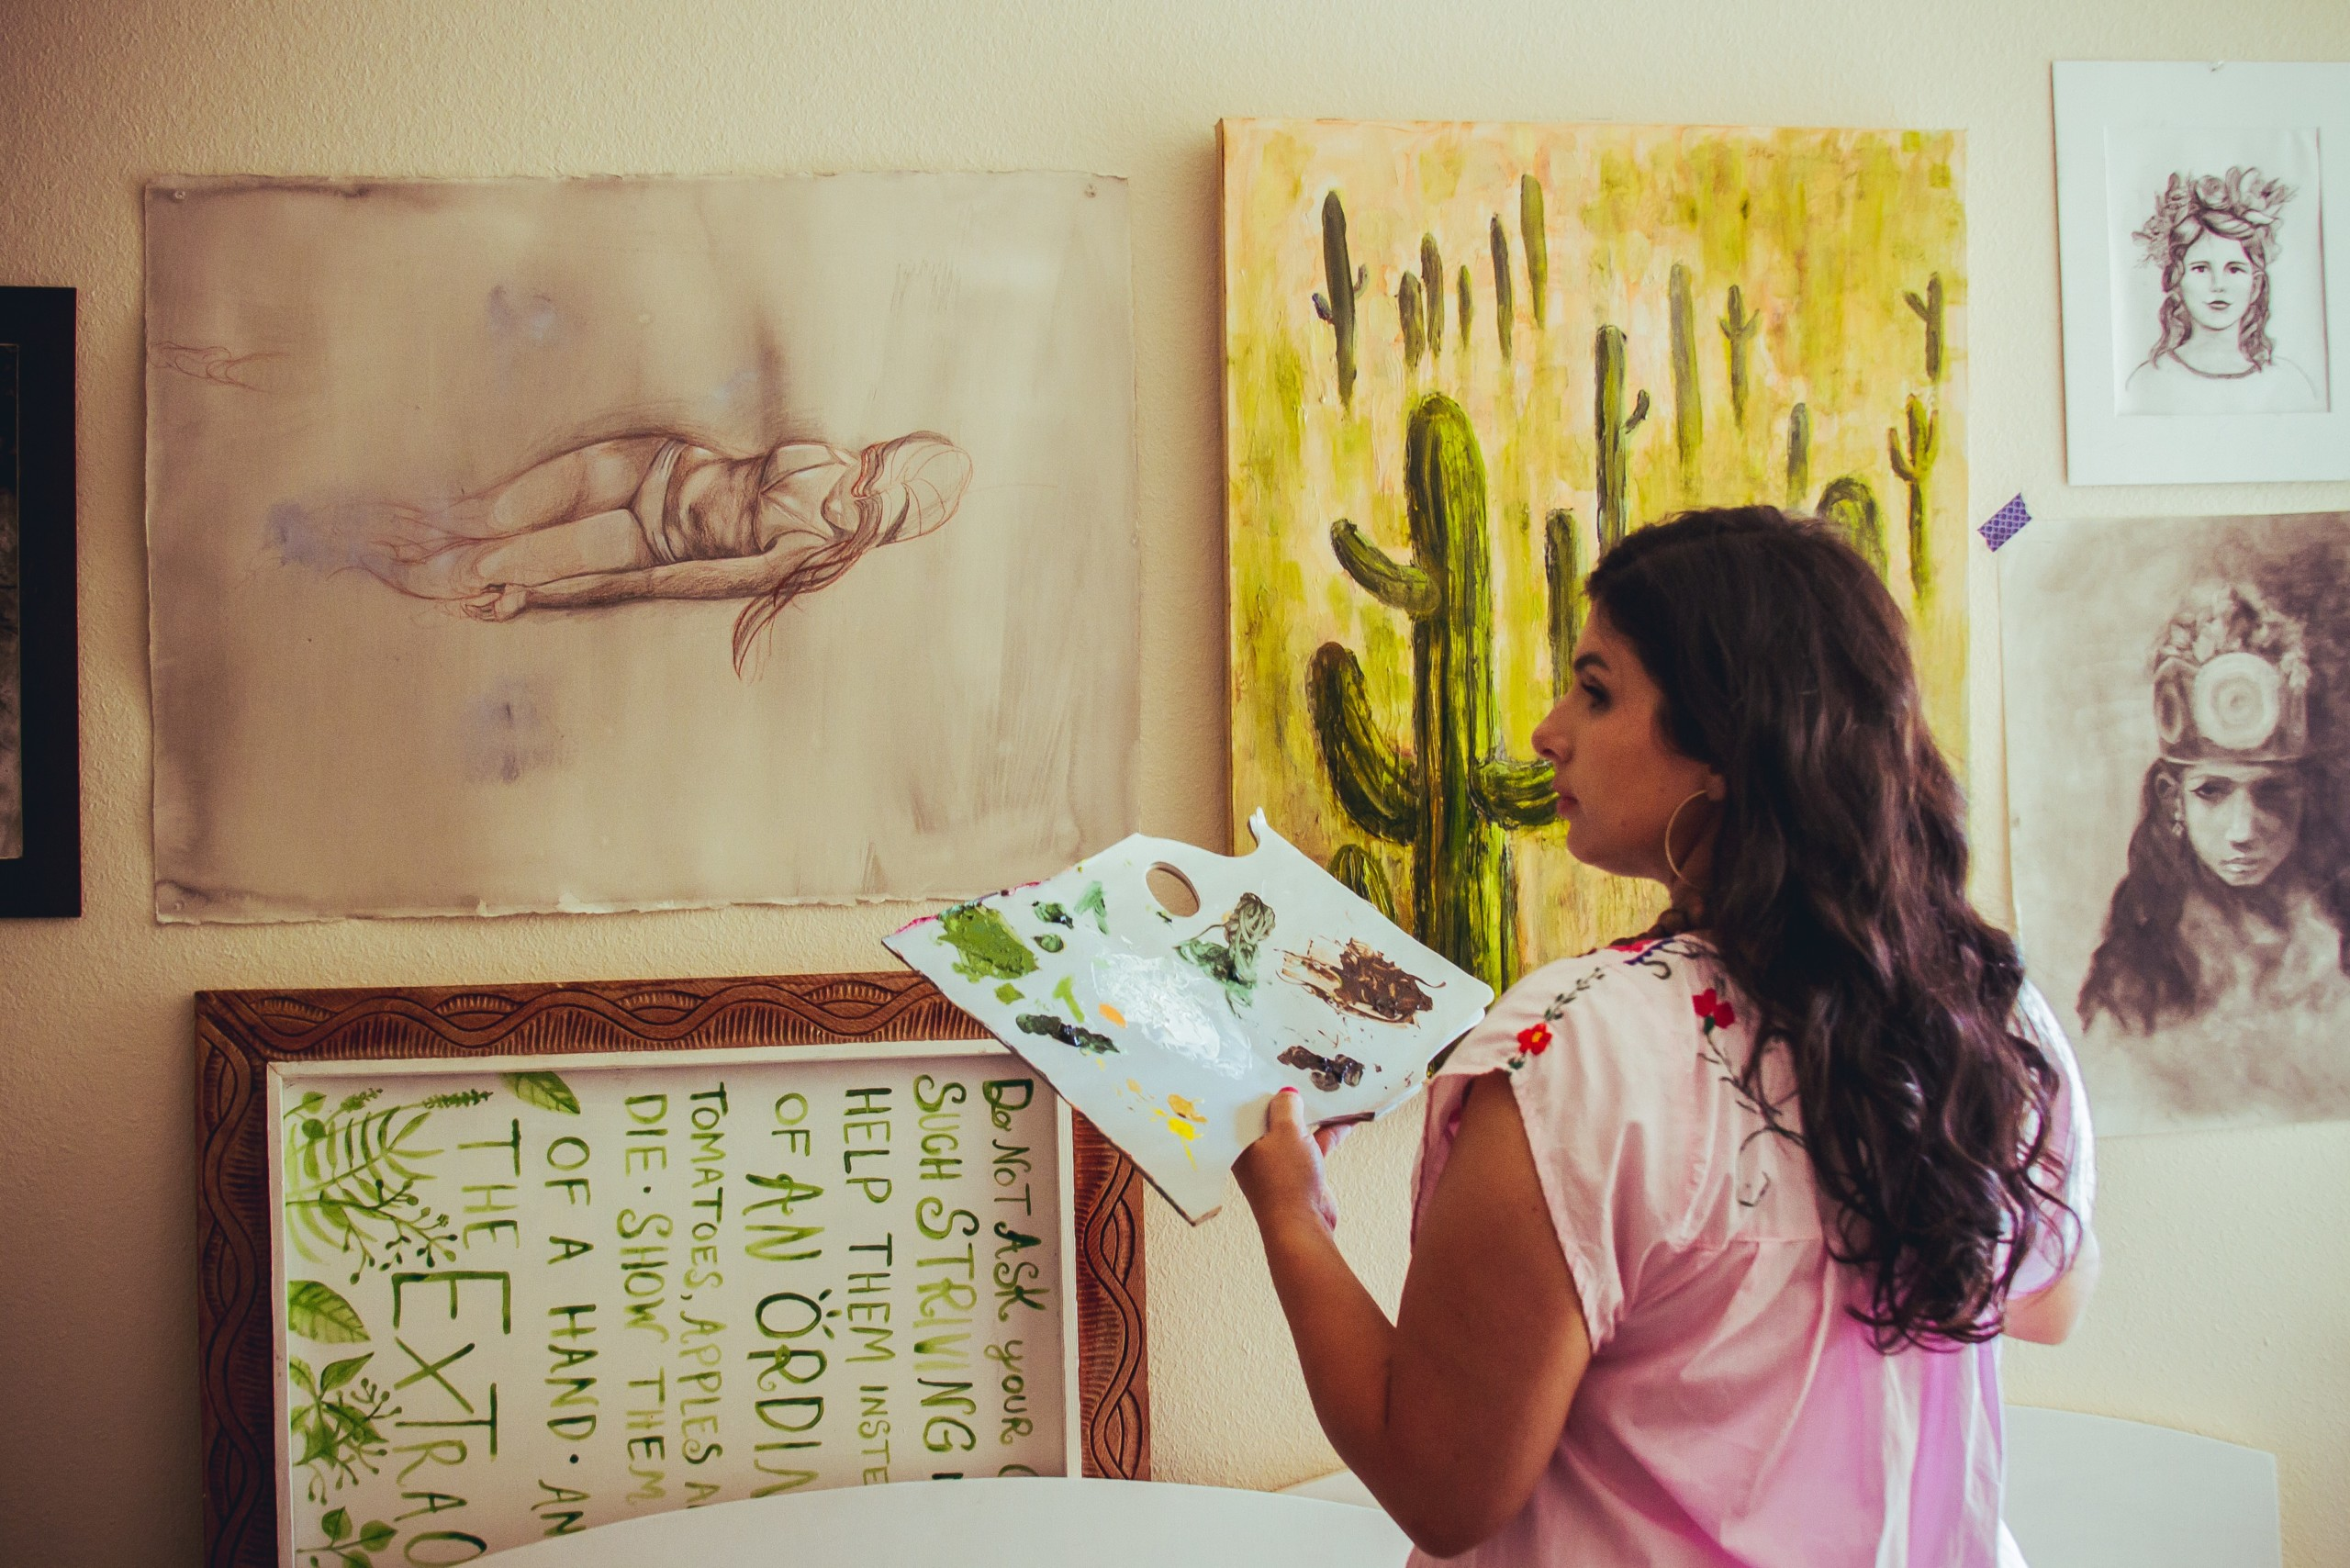 Michelle stands in front of a saguaro painting as well as some other paintings and sketches.